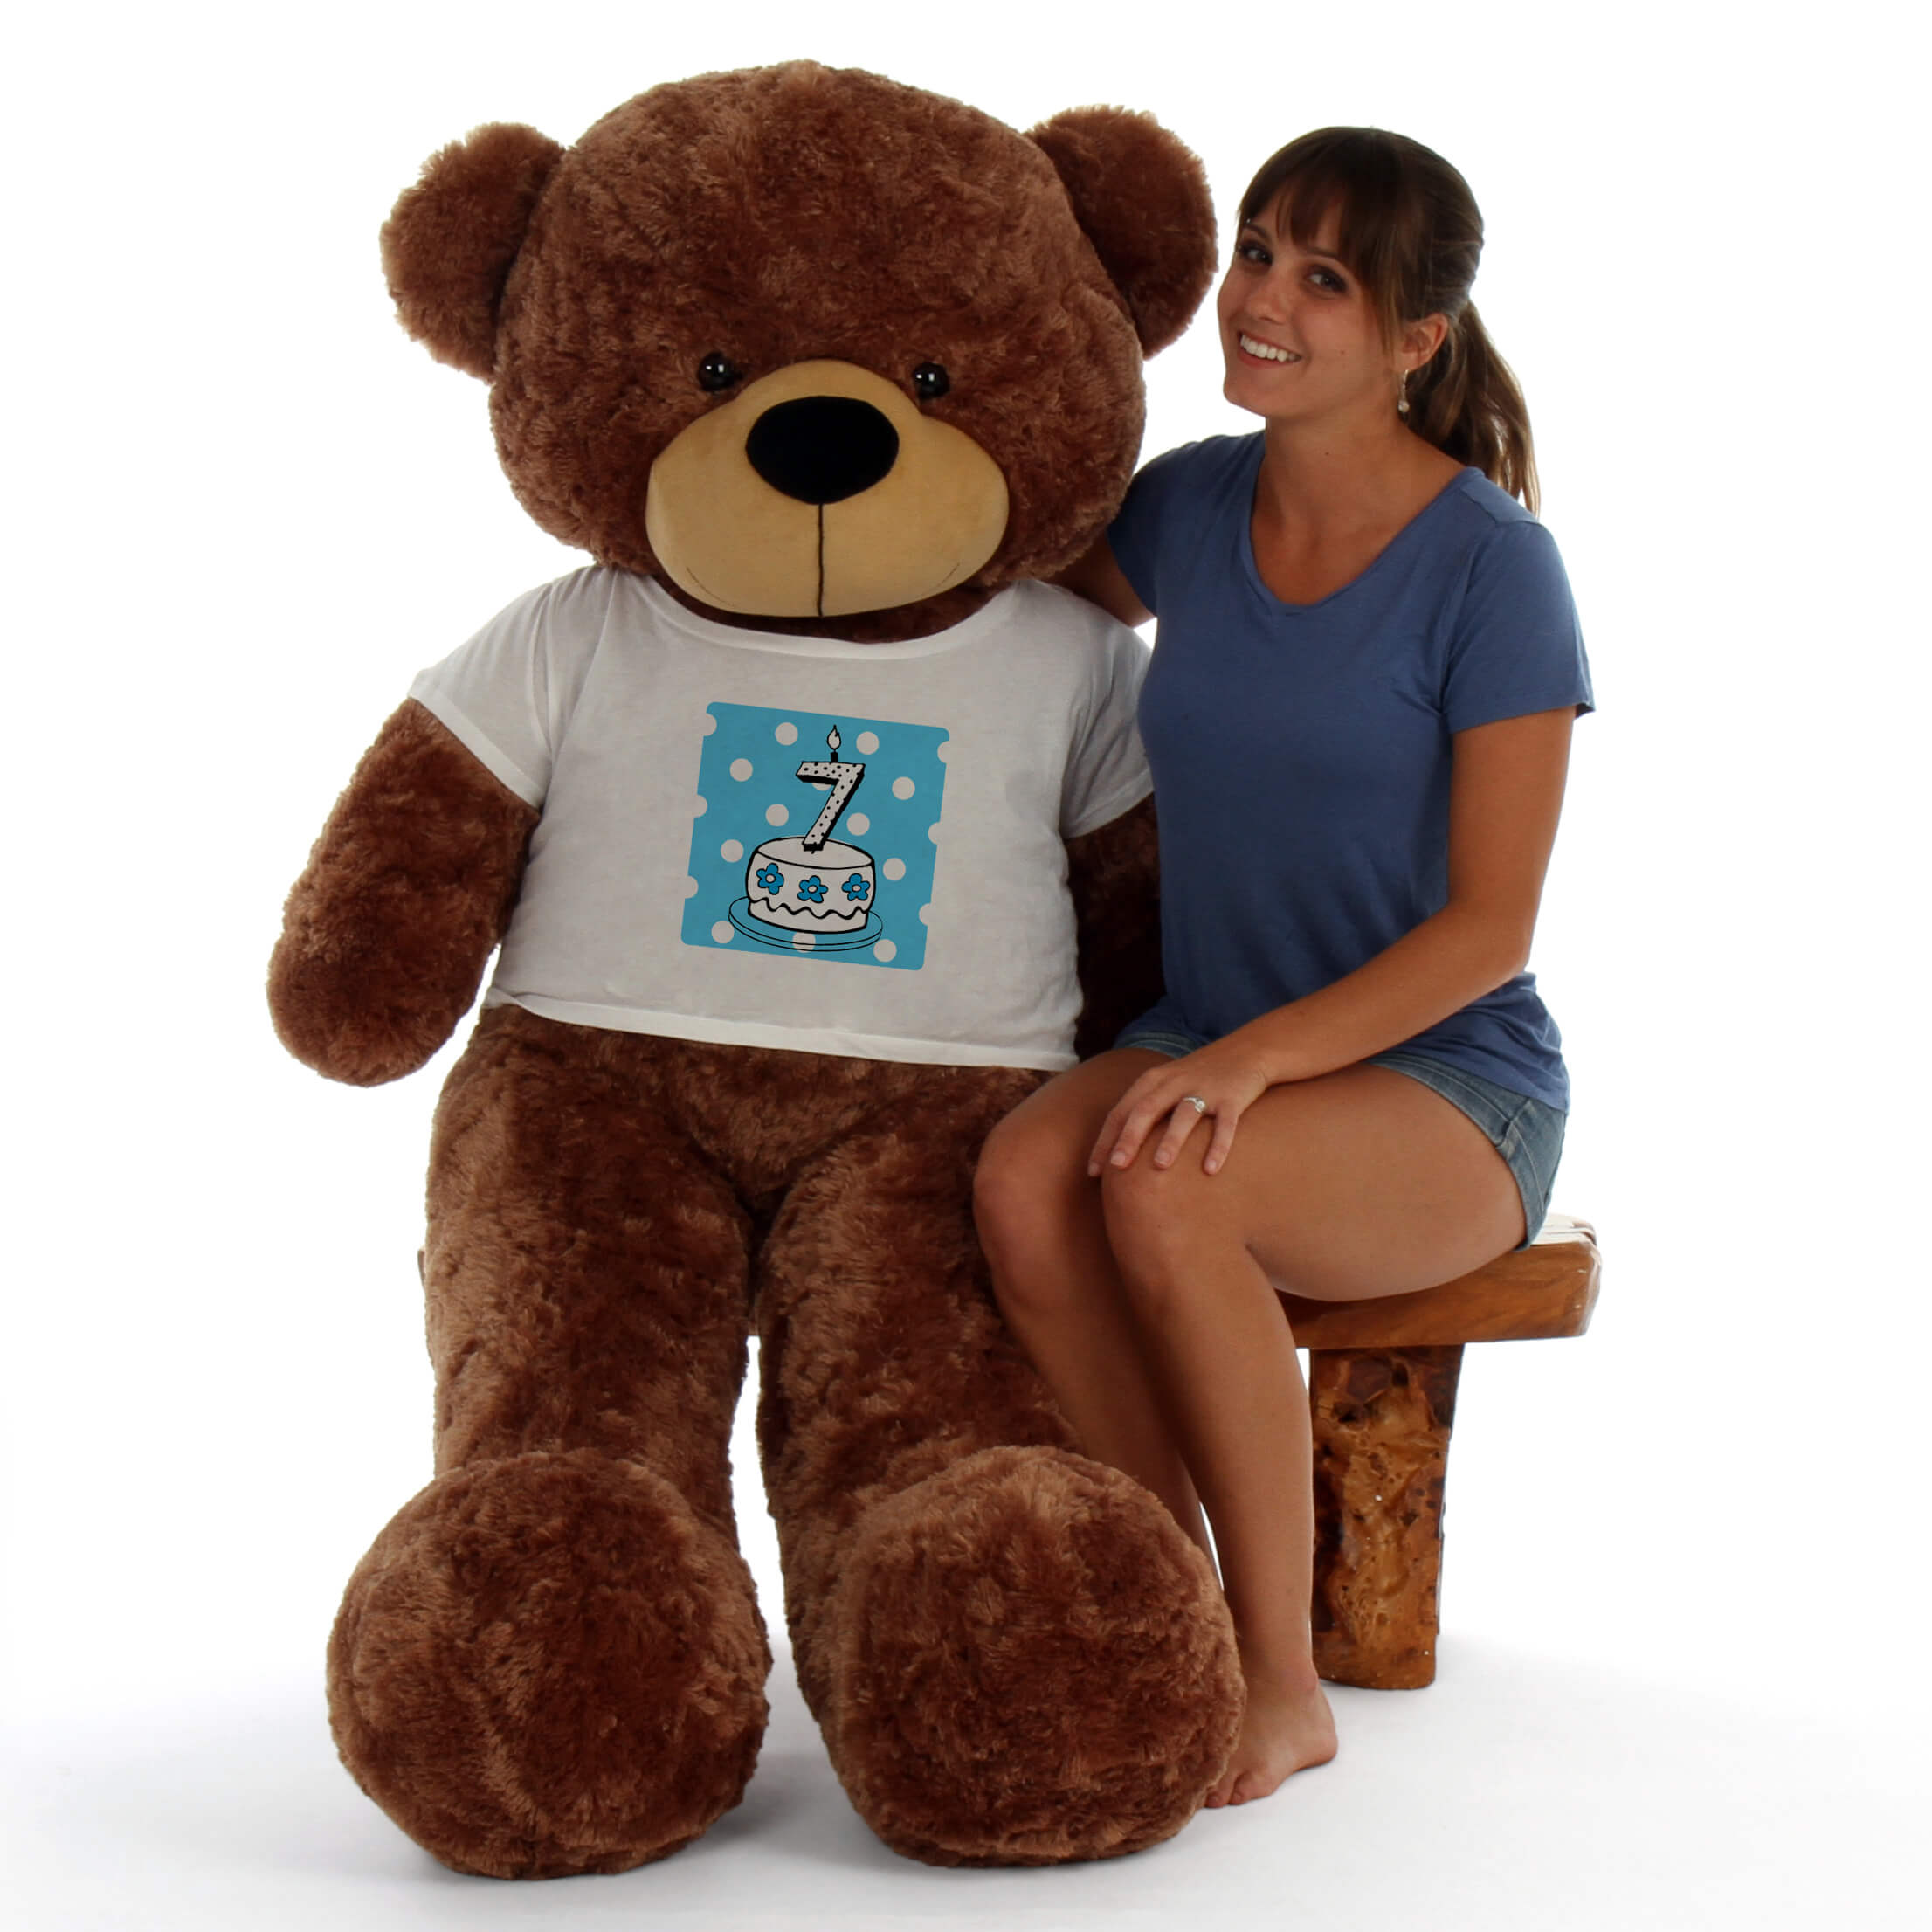 60in-giant-teddy-bear-mocha-brown-sunny-cuddles-in-a-blue-birthday-cake-t-shirt.jpg